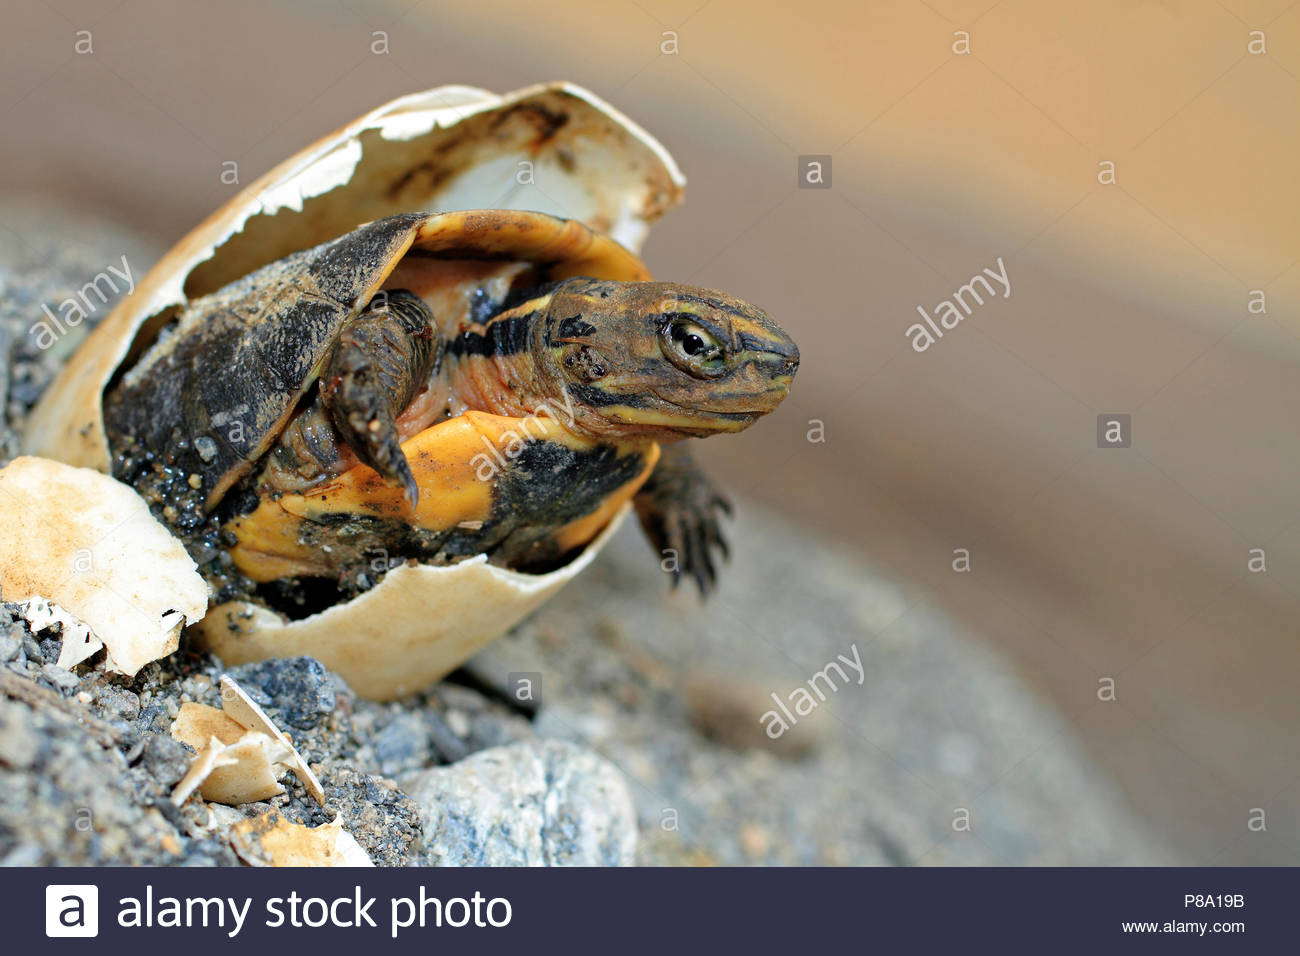 Green turtle (Chelonia mydas), hatches from egg, Puerto Galera, Mindoro, Philippines - Stock Image